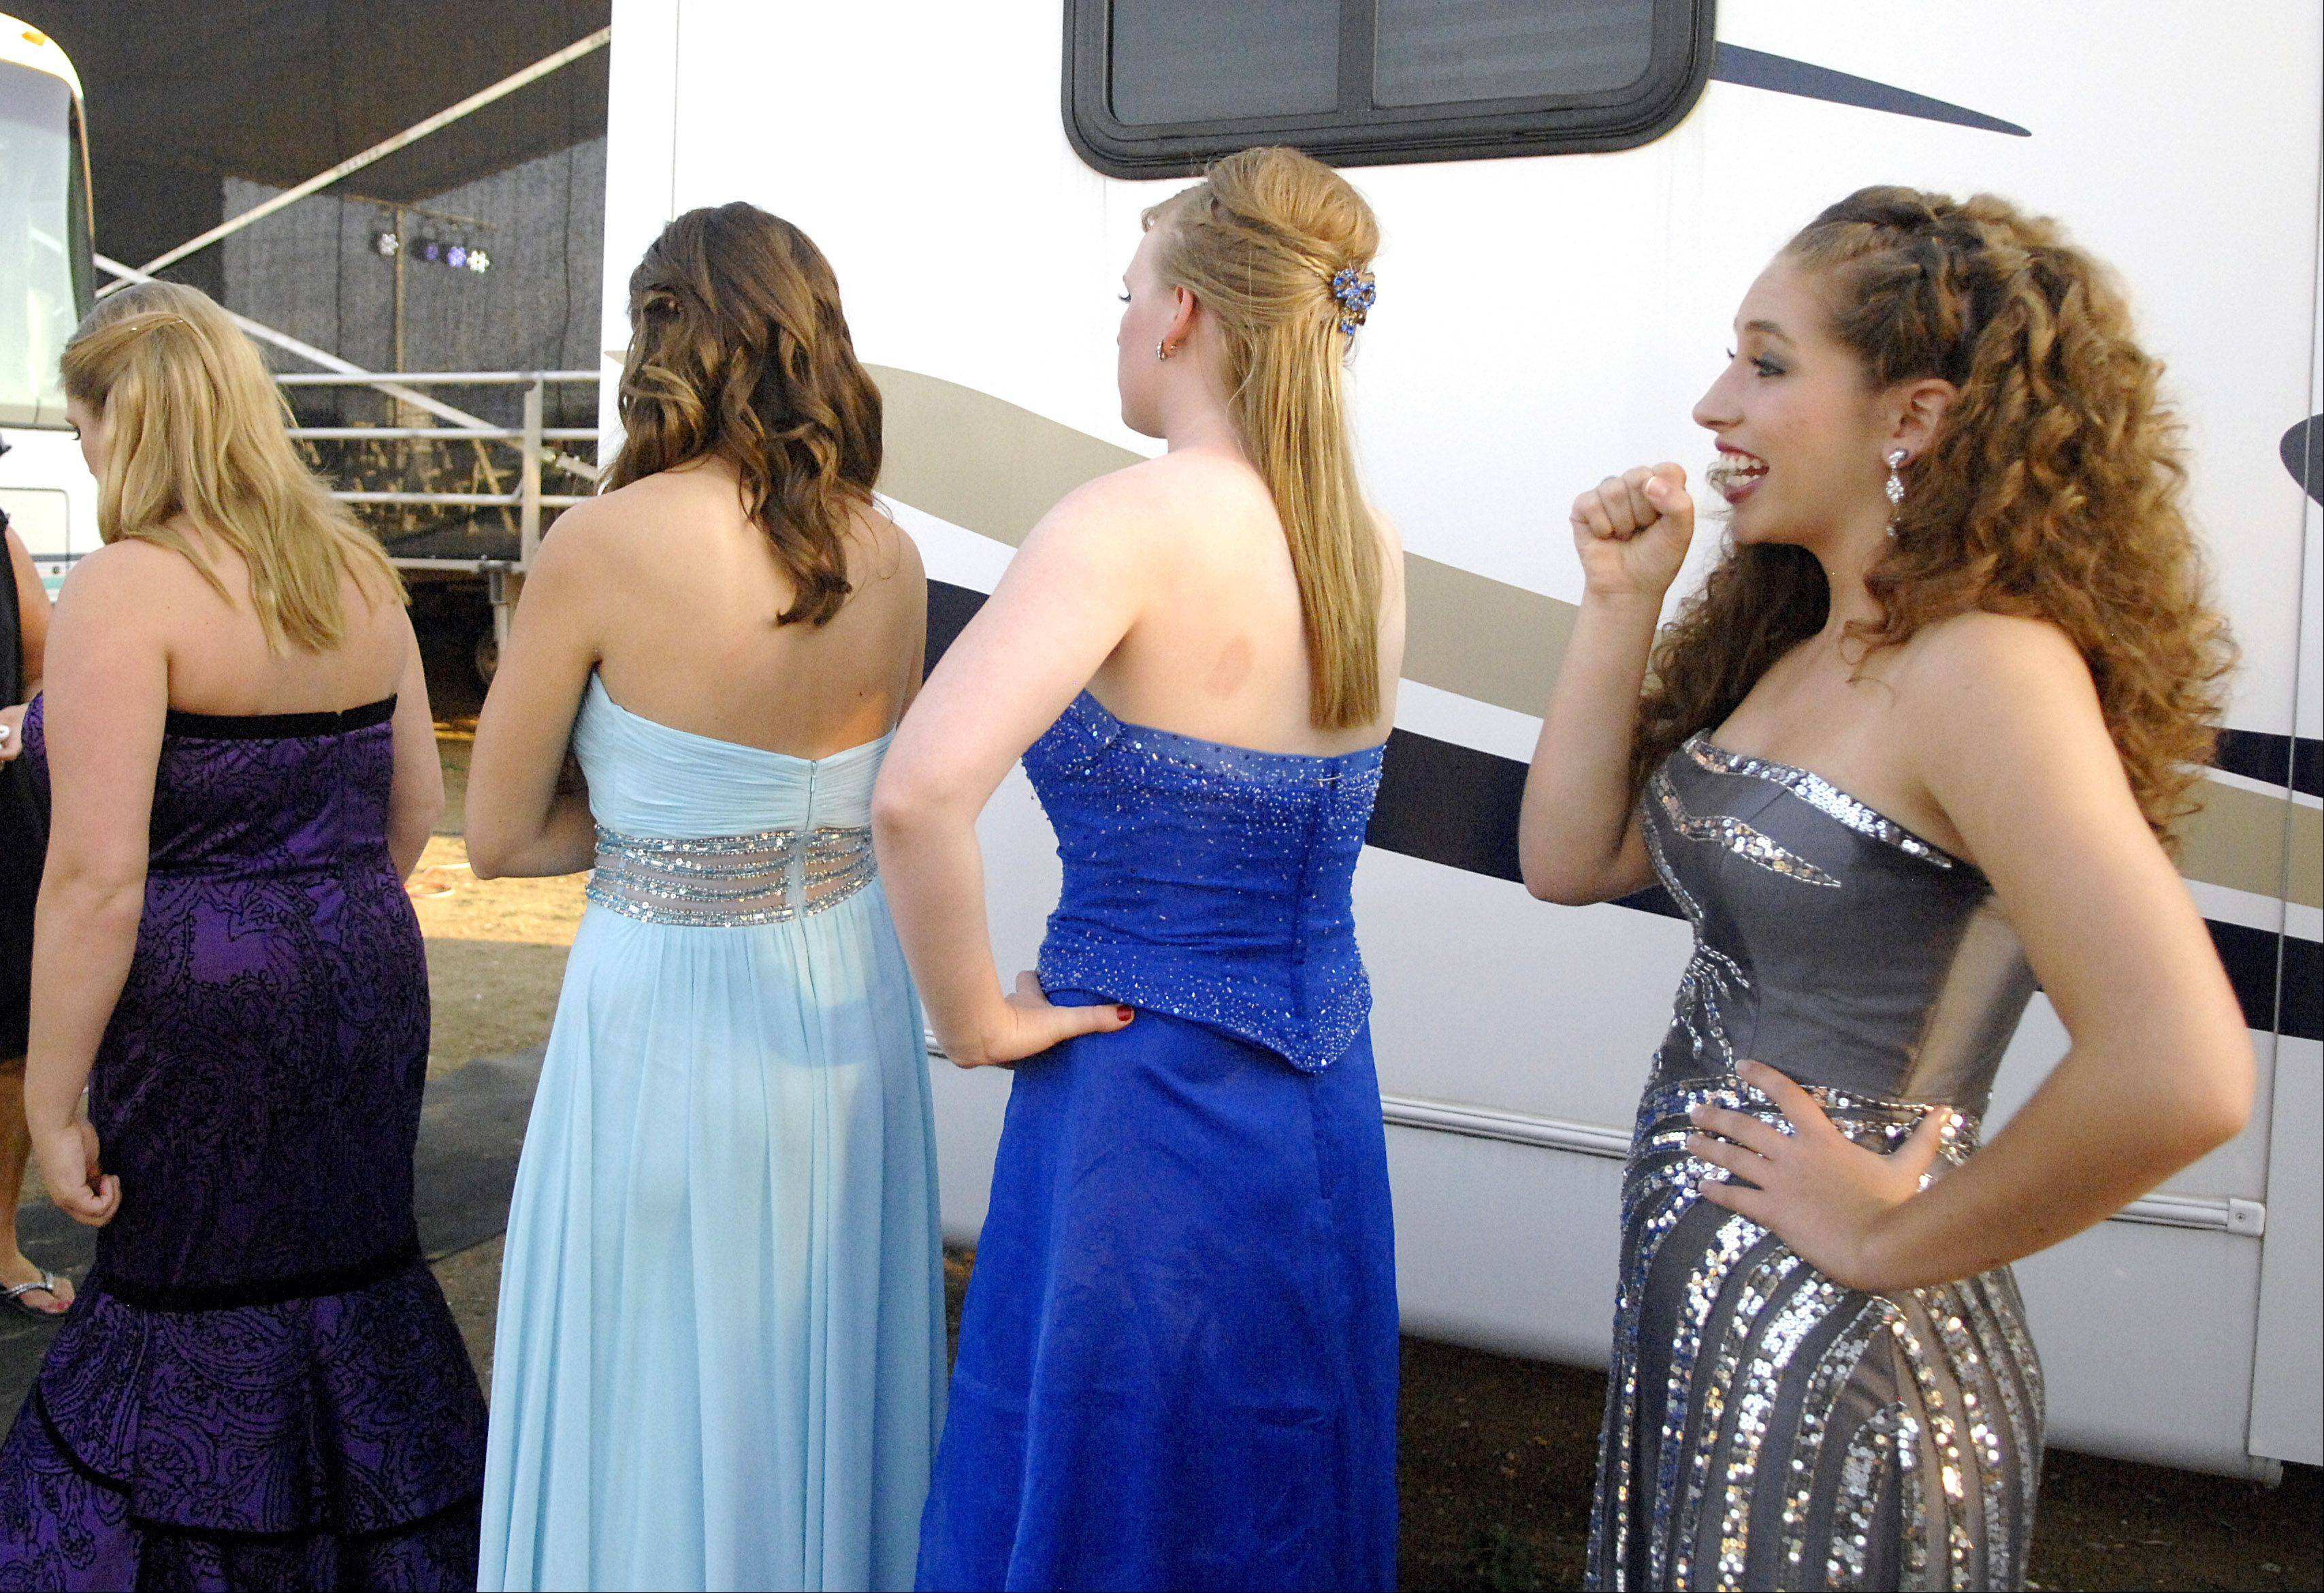 Katey Kelleher, 17, of Cary practices her speech behind mobile trailers during the 2012 Miss McHenry County pageant.